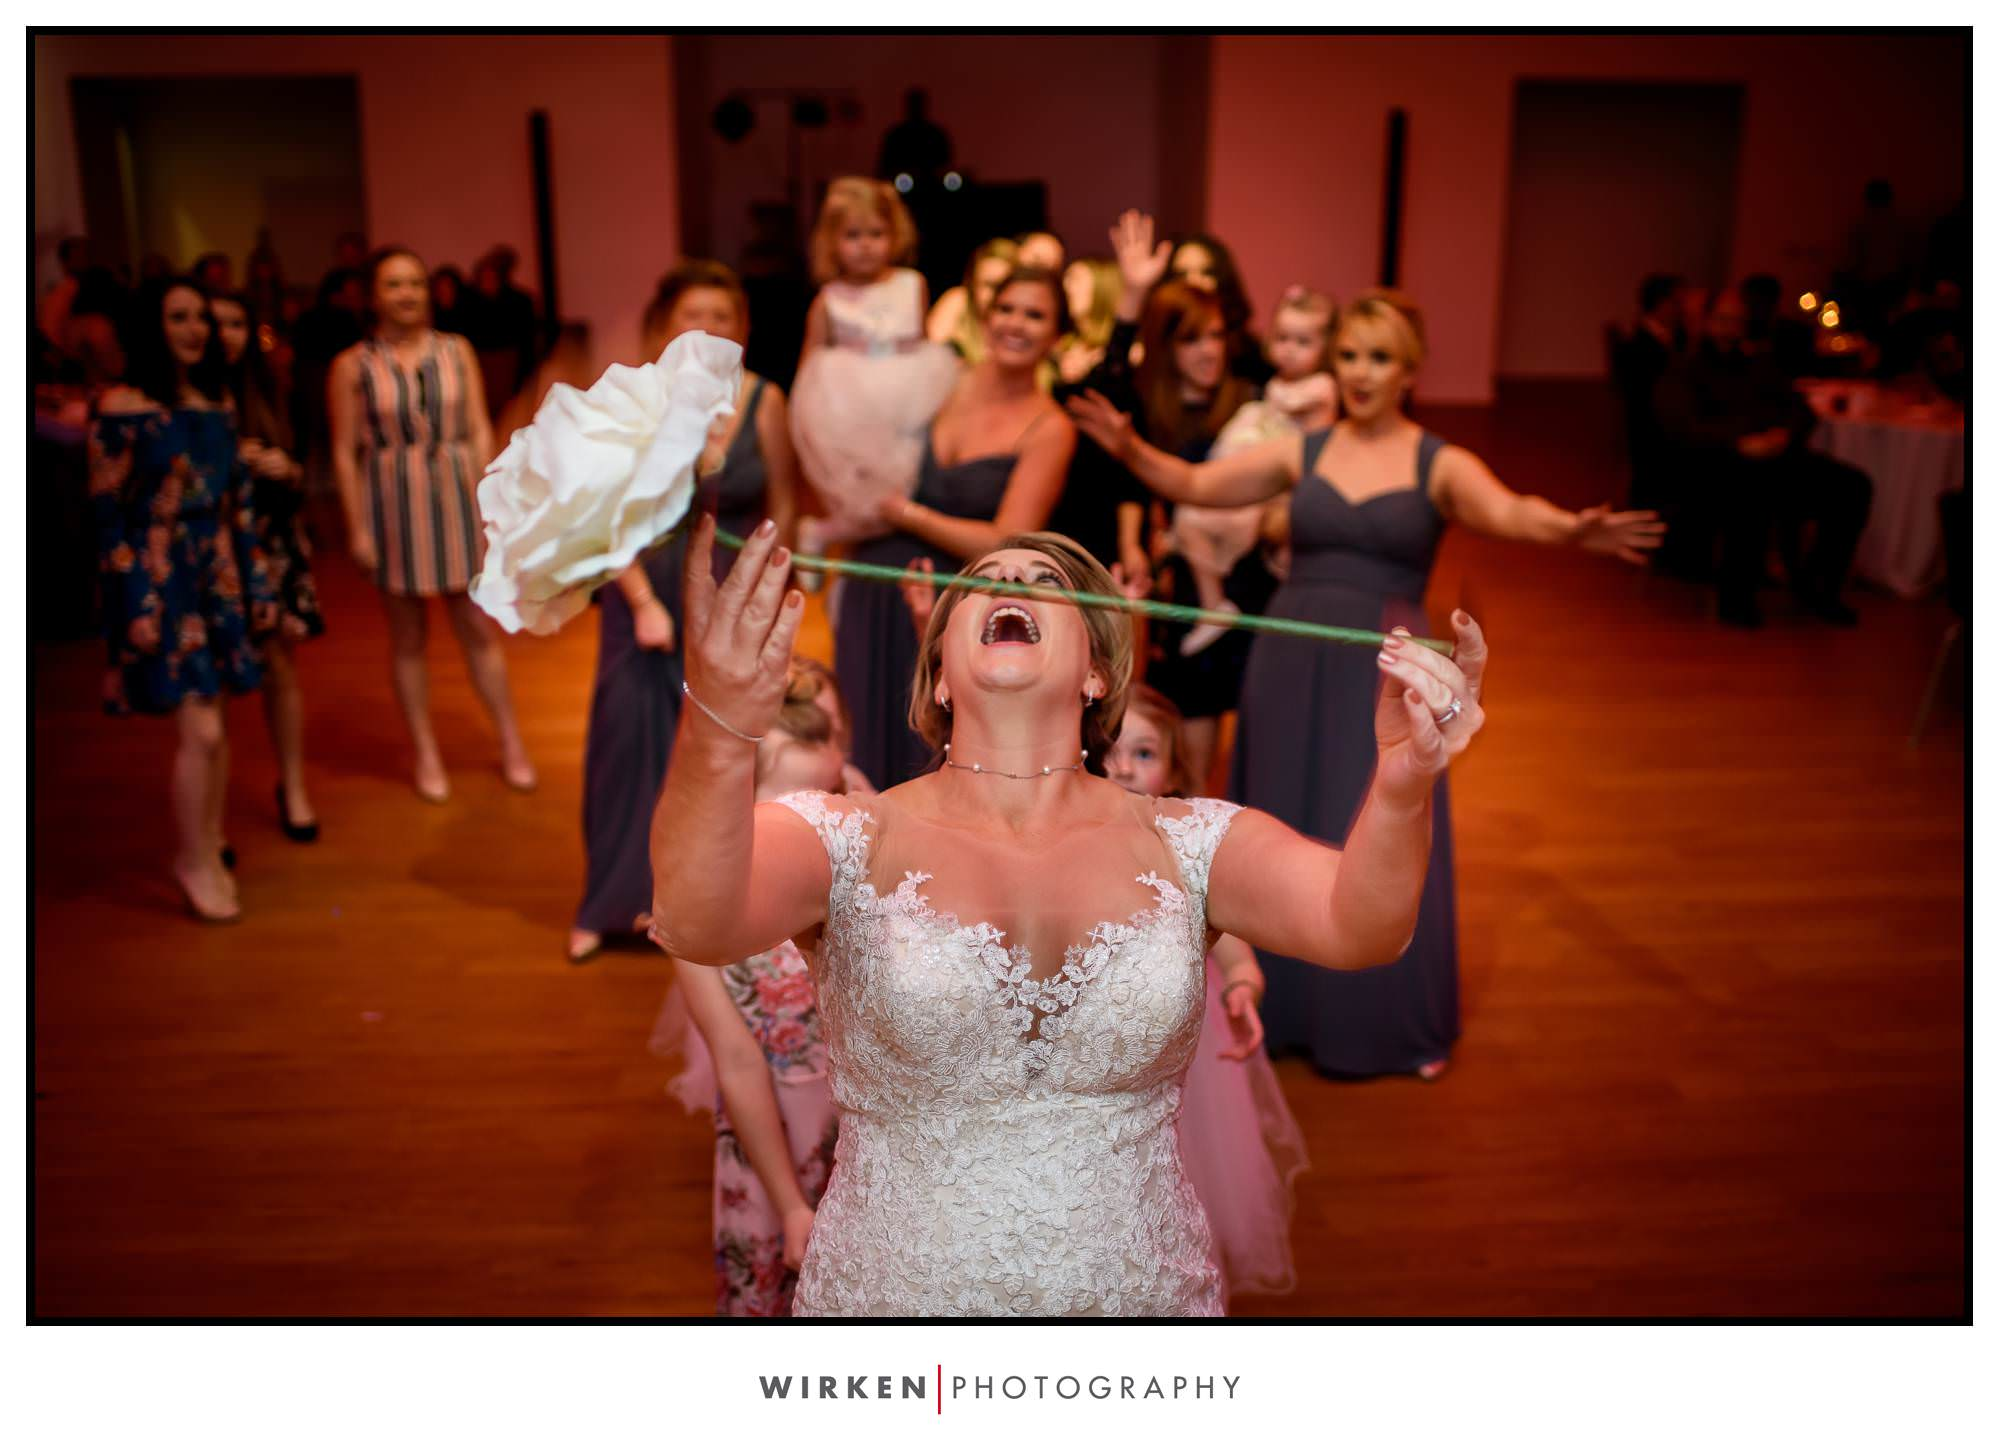 Leah tosses a flower at her her Gallery Event Space wedding reception.